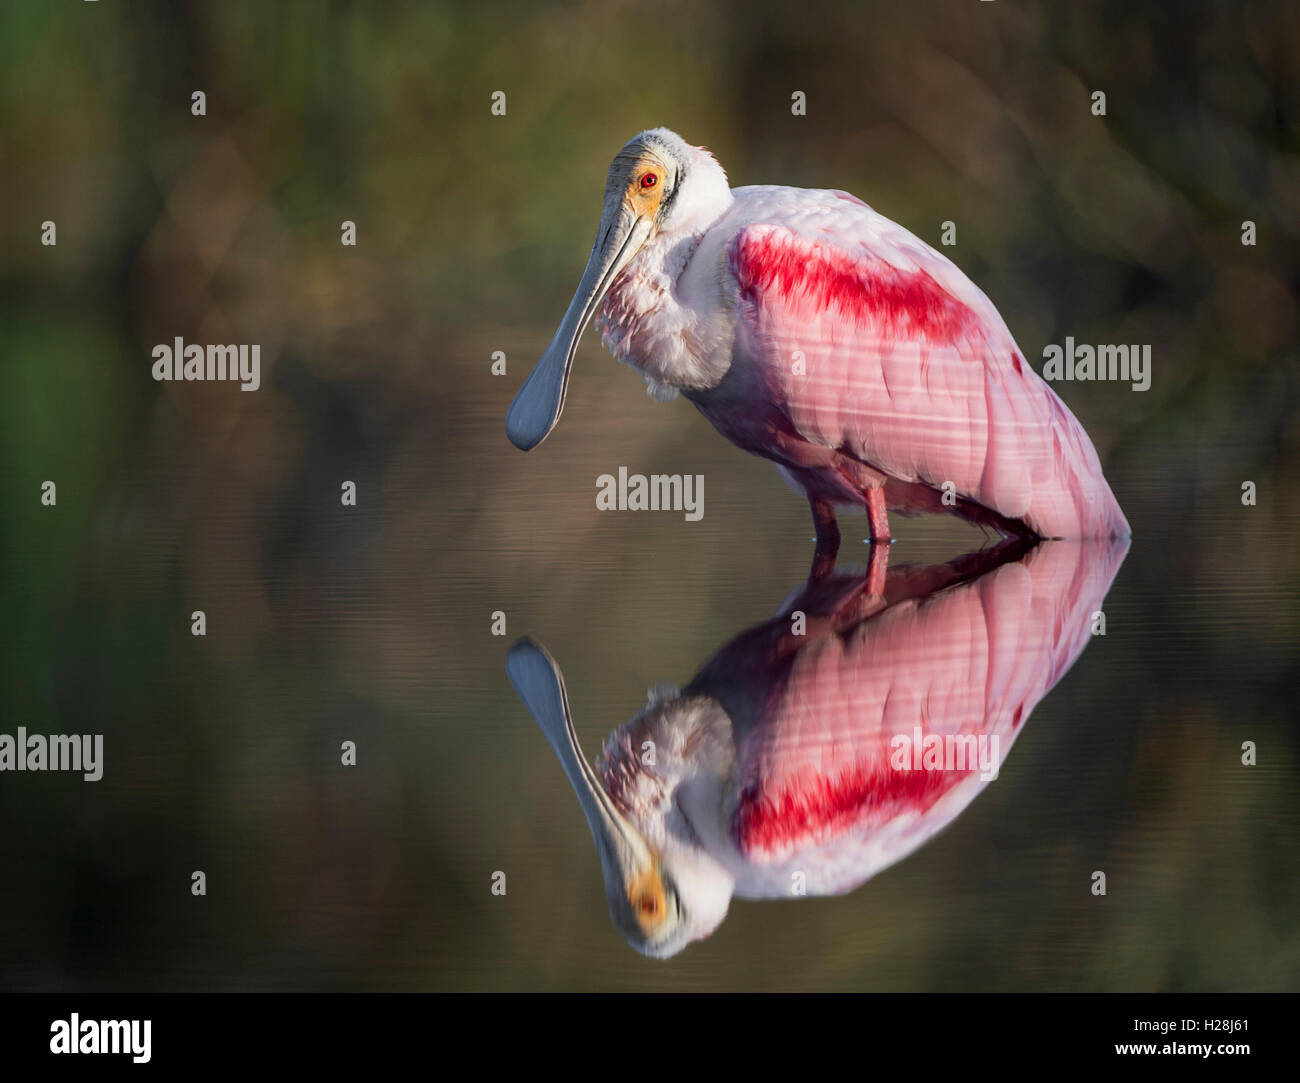 A Roseate Spoonbill stands in somewhat calm water which shows a nice reflection.  The background blends with the - Stock Image